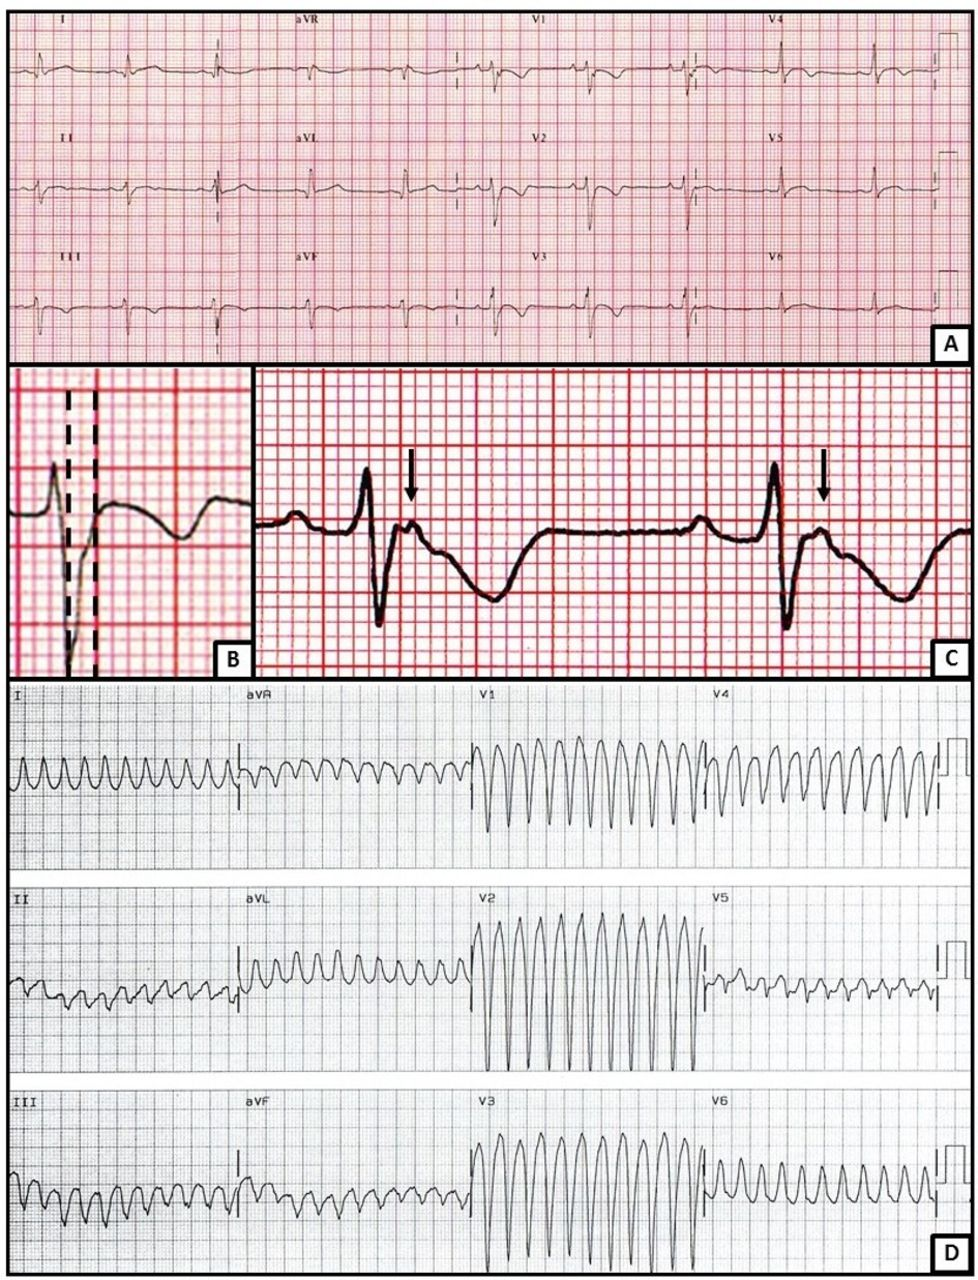 Arrhythmogenic cardiomyopathies (ACs): diagnosis, risk